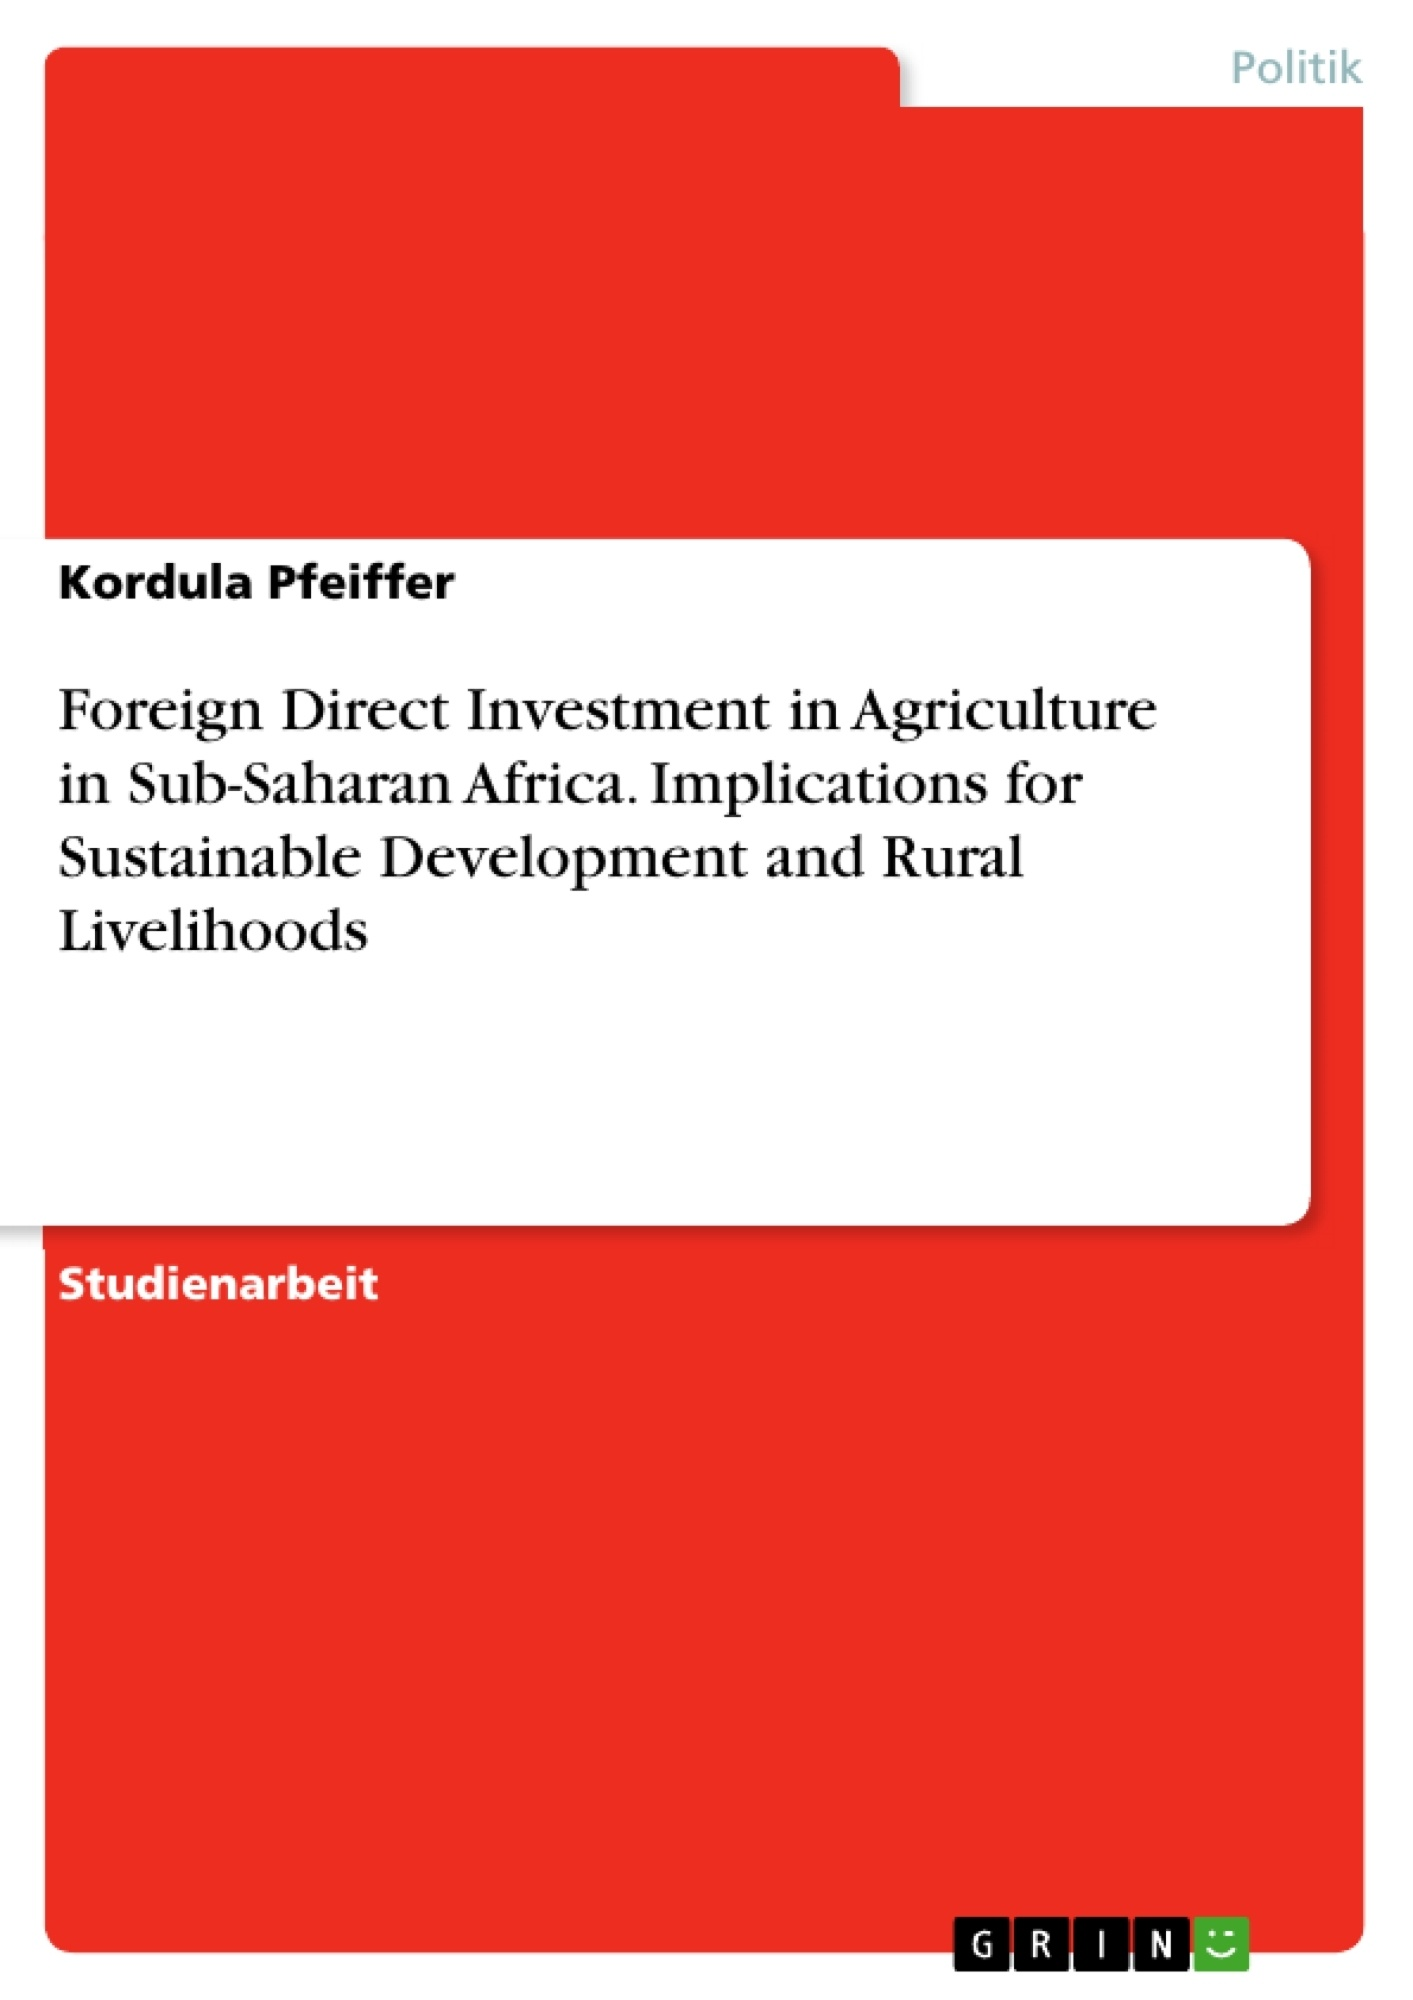 Titel: Foreign Direct Investment in Agriculture in Sub-Saharan Africa. Implications for Sustainable Development and Rural Livelihoods